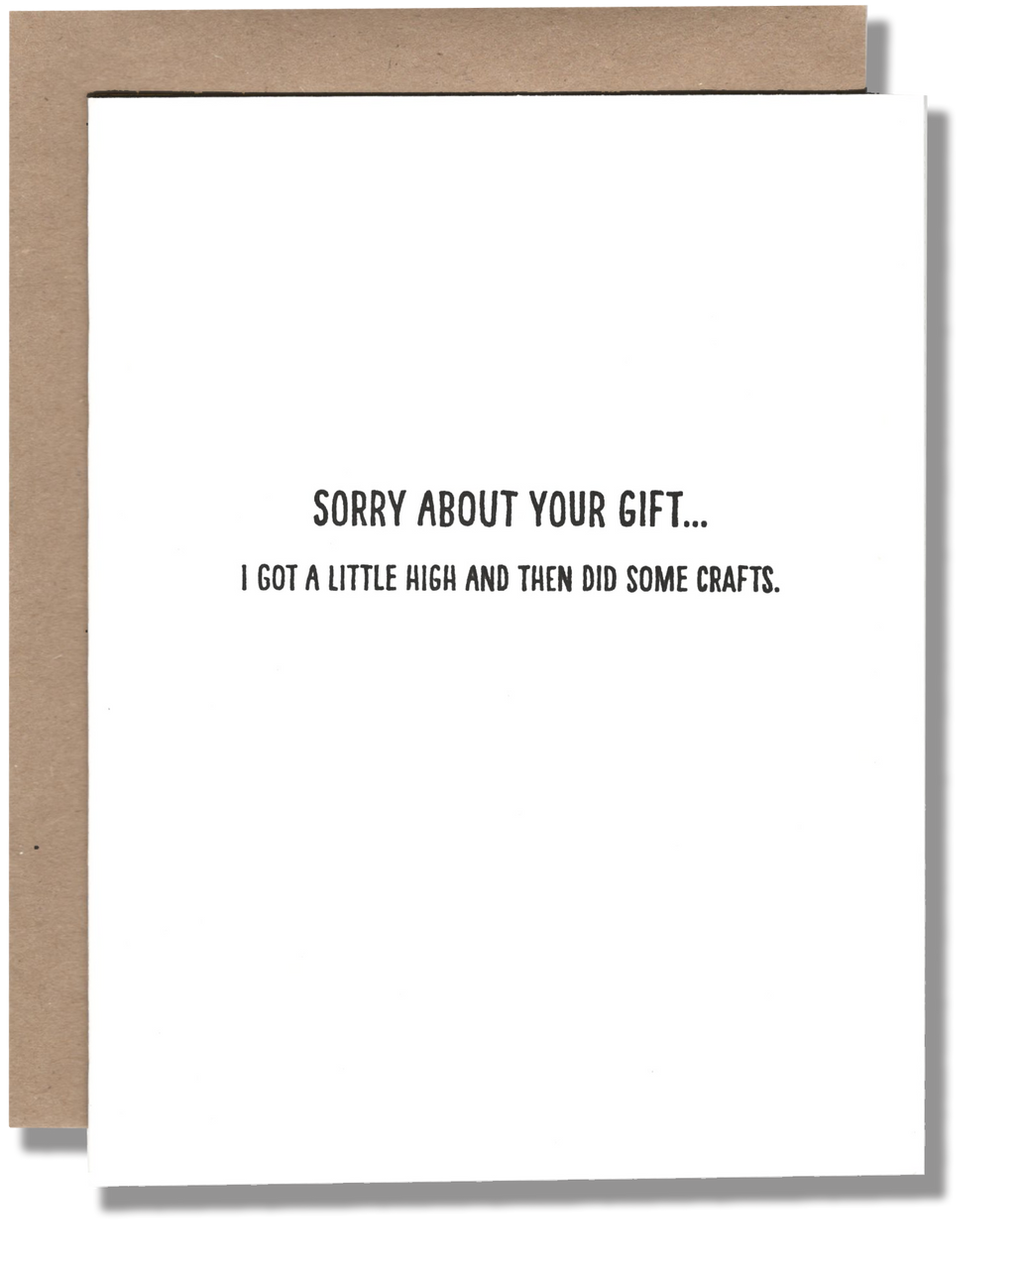 Sorry About Your Gift... Card - {neighborhood}